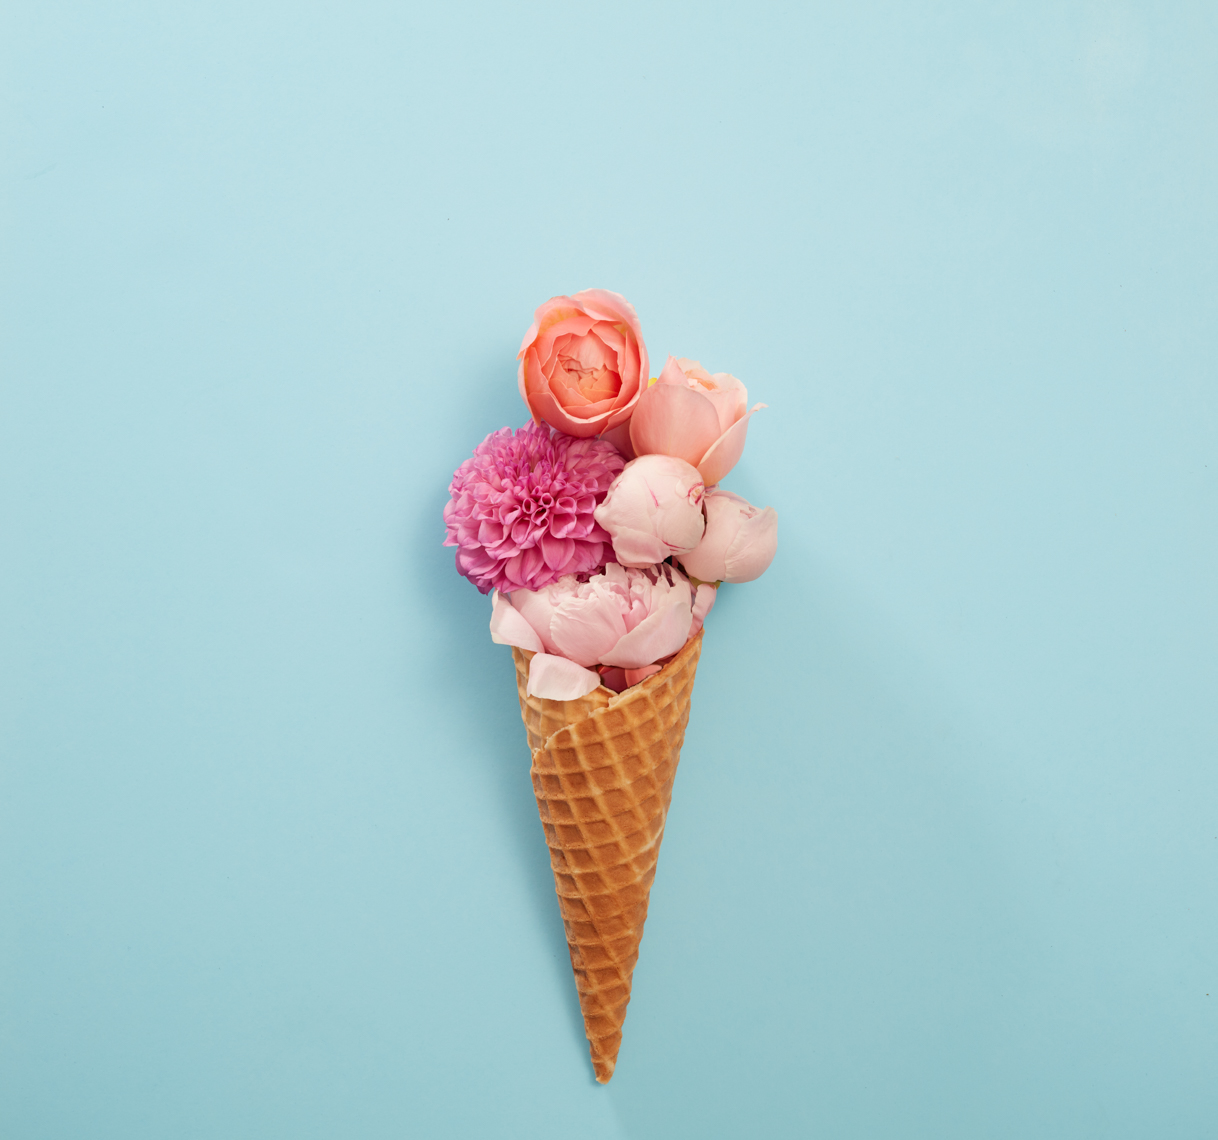 Flower ice cream cone on blue Philip Harvey Photography, San Francisco, California, still life, interiors, lifestyle and product photography San Francisco product photographer